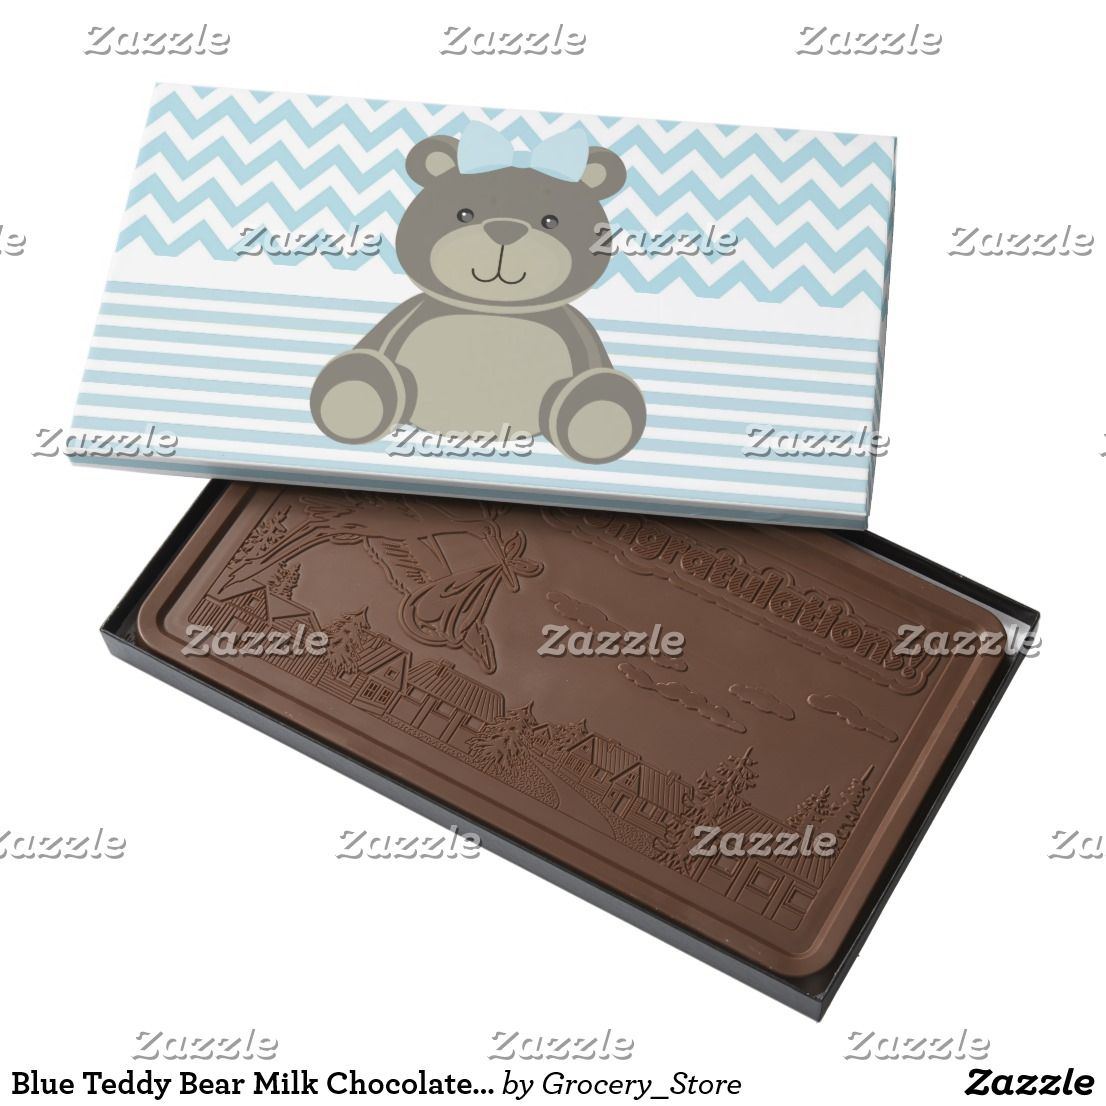 Blue Teddy Bear Milk Chocolate 2 Pound Bar Zazzle